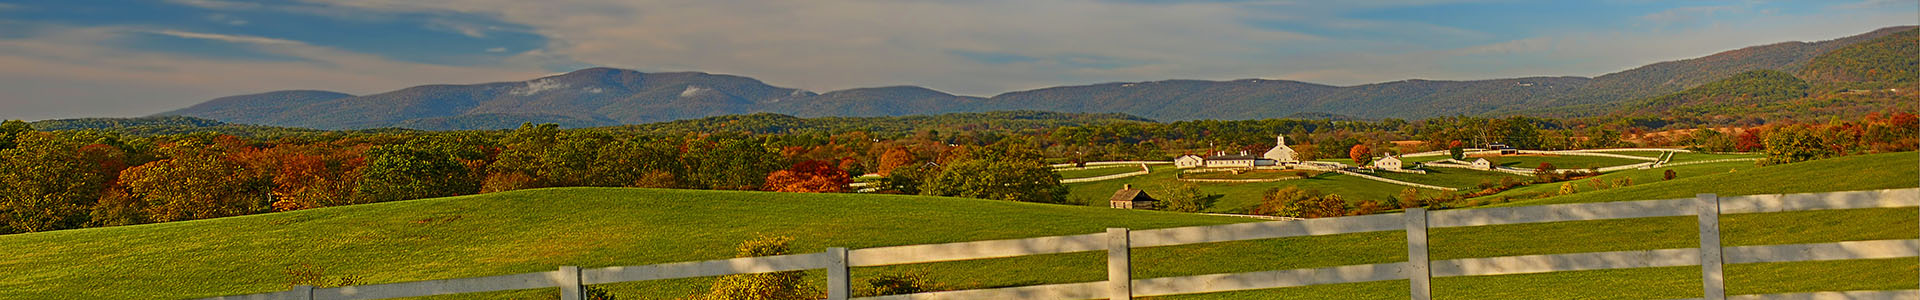 Farms in Albemarle County VA for Sale